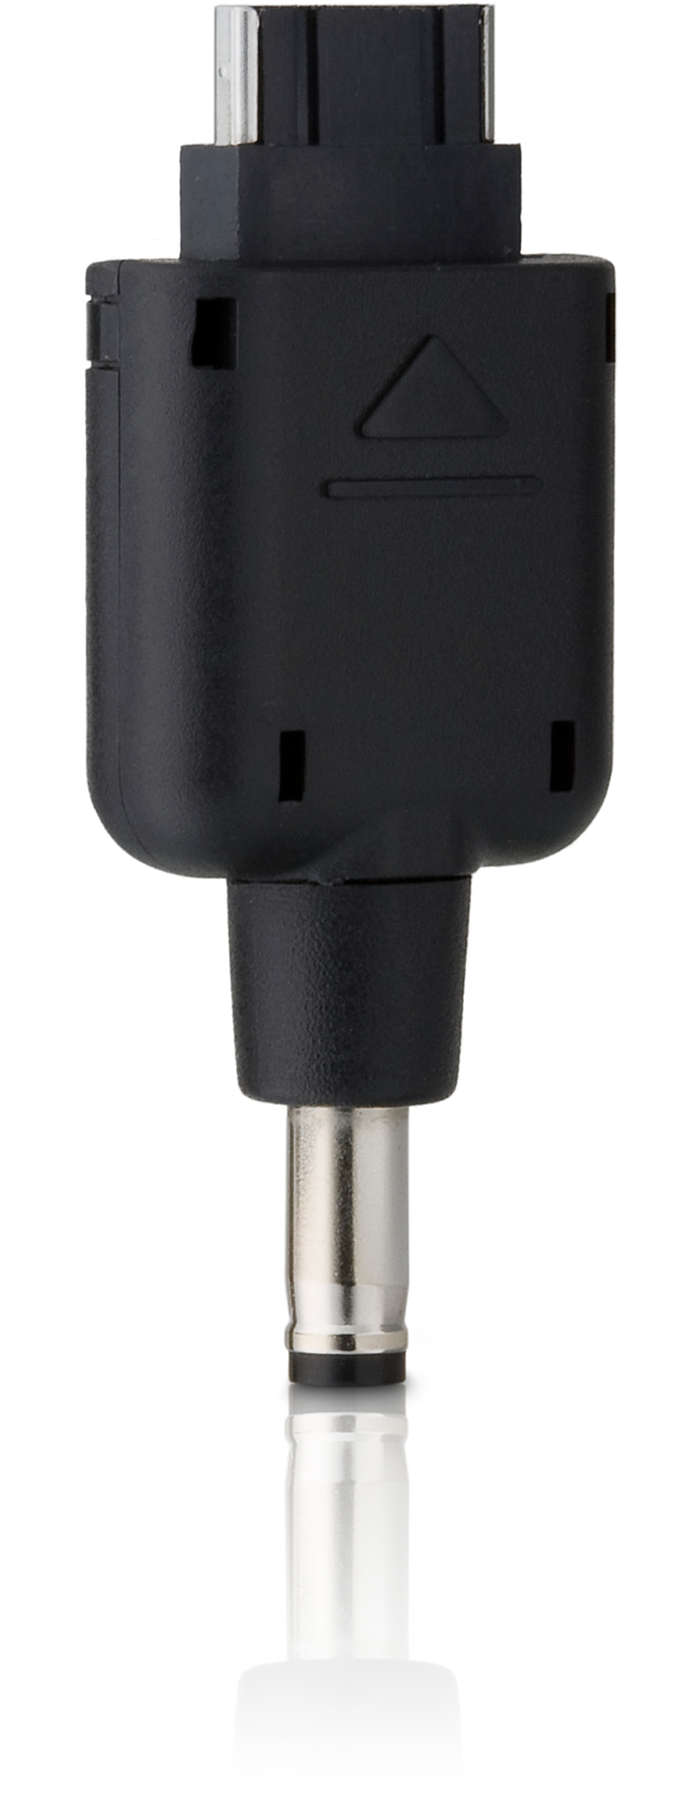 Connector tip for LG Chocolate phones